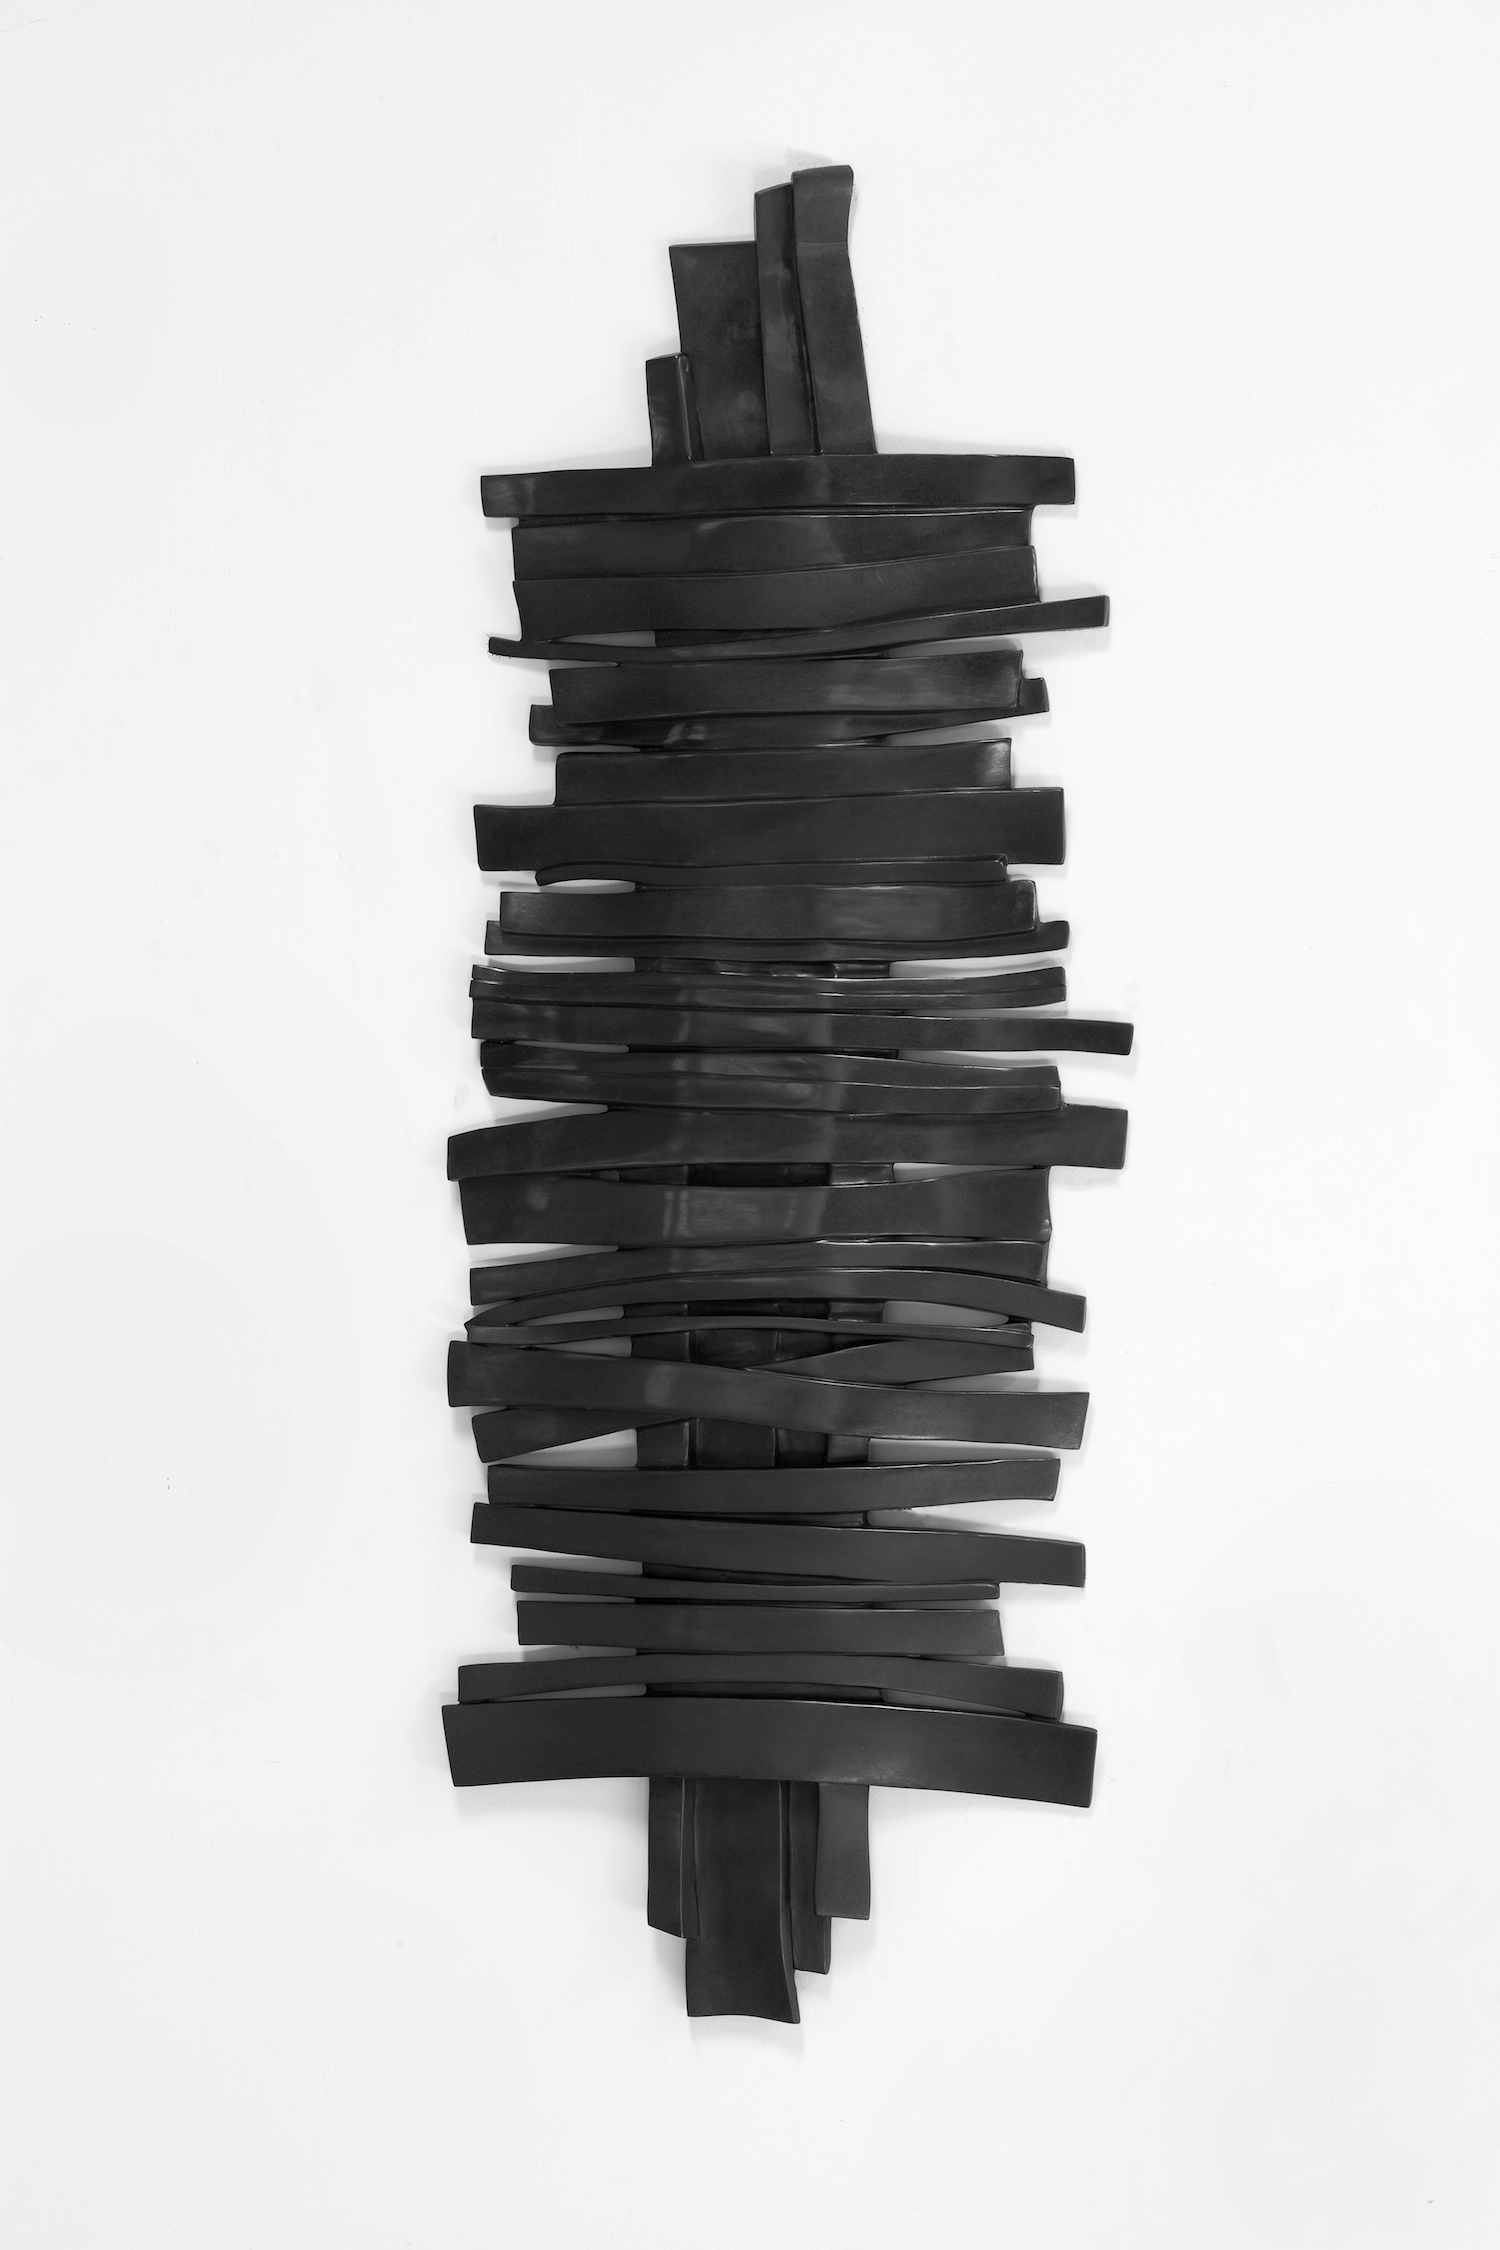 Anthony Pearson  Untitled (Tablet)  2012 Bronze relief with cobalt patina 38h x 14w x 1d in AP322